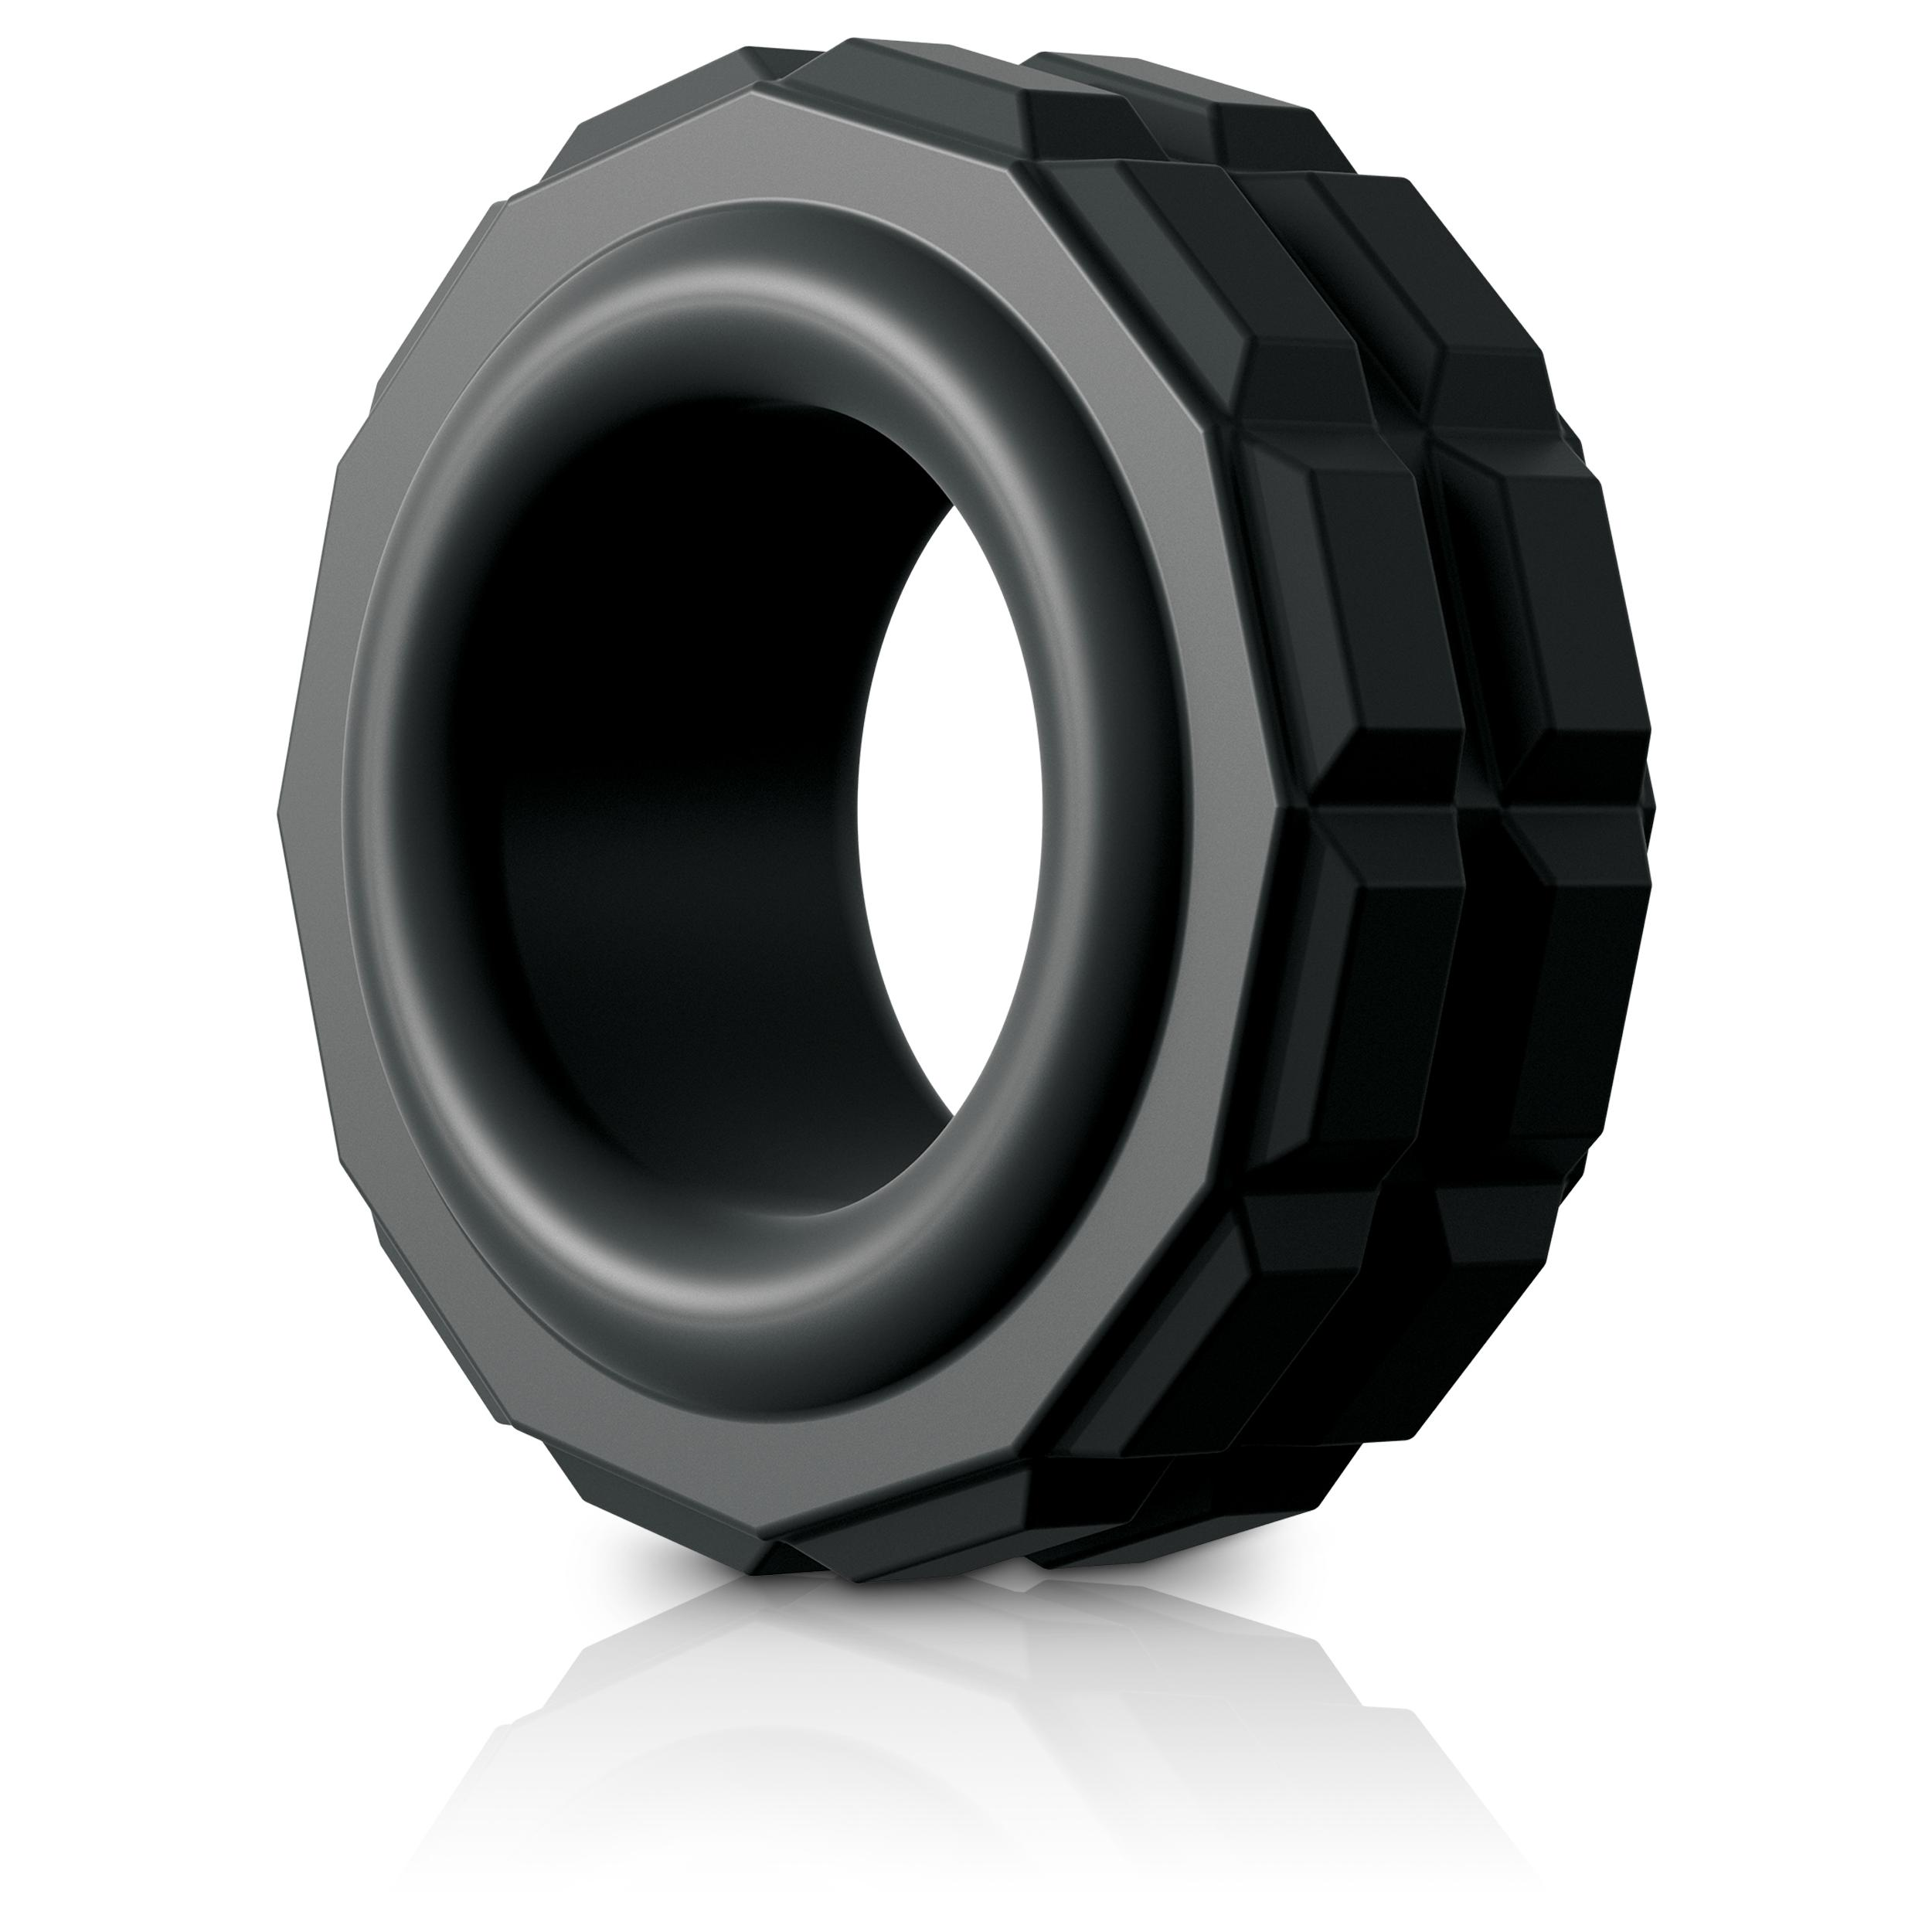 Sir Richards Control High Performance Silicone Ring Cock Ring Black SR1051-01 603912755275